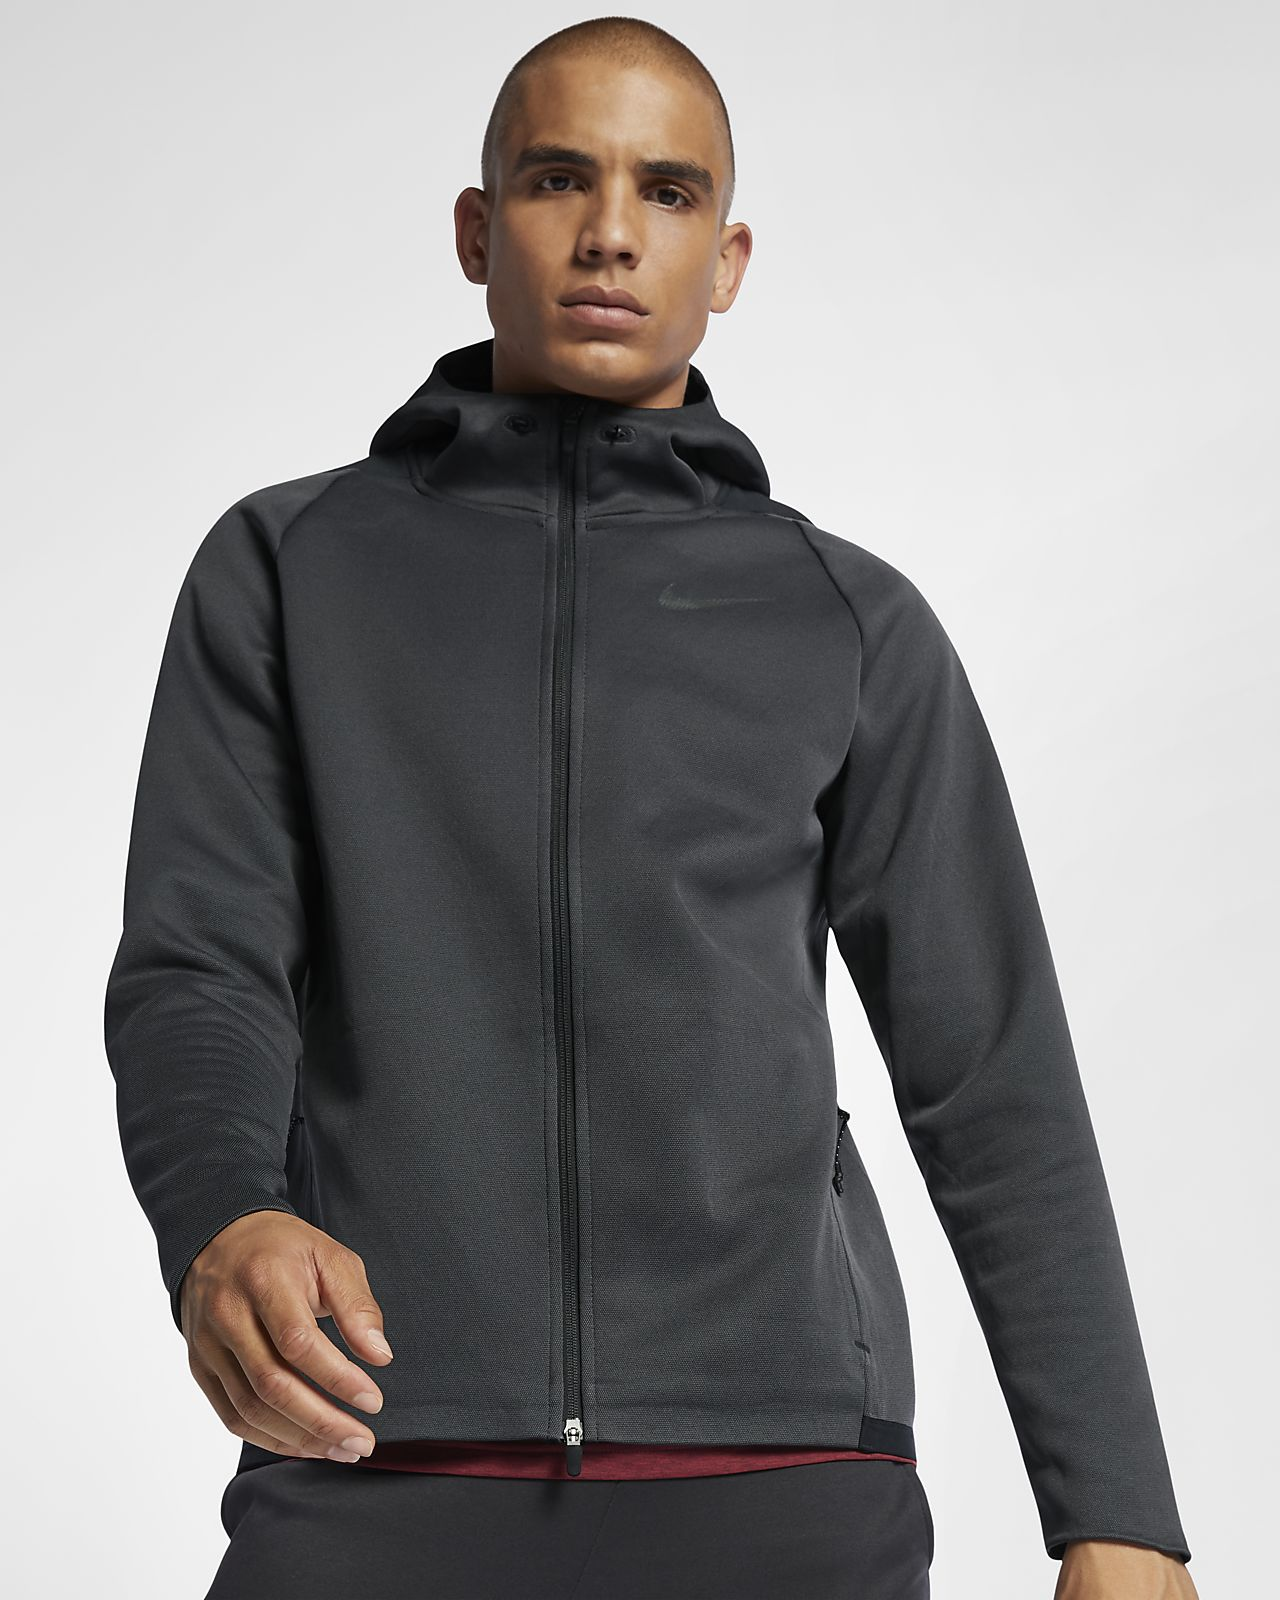 d191573ddb Nike Therma-Sphere Men's Training Jacket